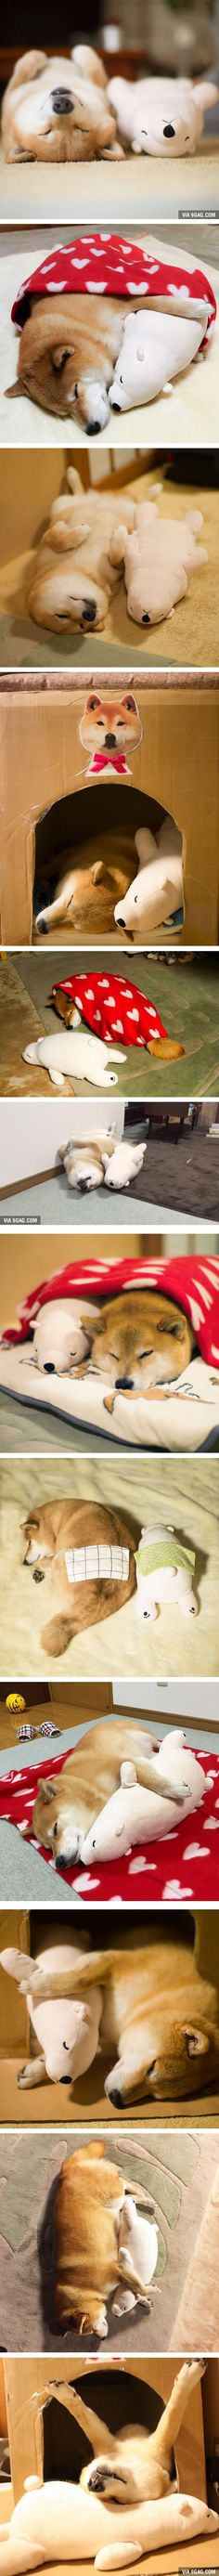 Shiba Inu Maru Loves To Sleep With His Little Stuffed Polar Bear Toy  | Follow us for more fun pet videos and photos @gwylio0148